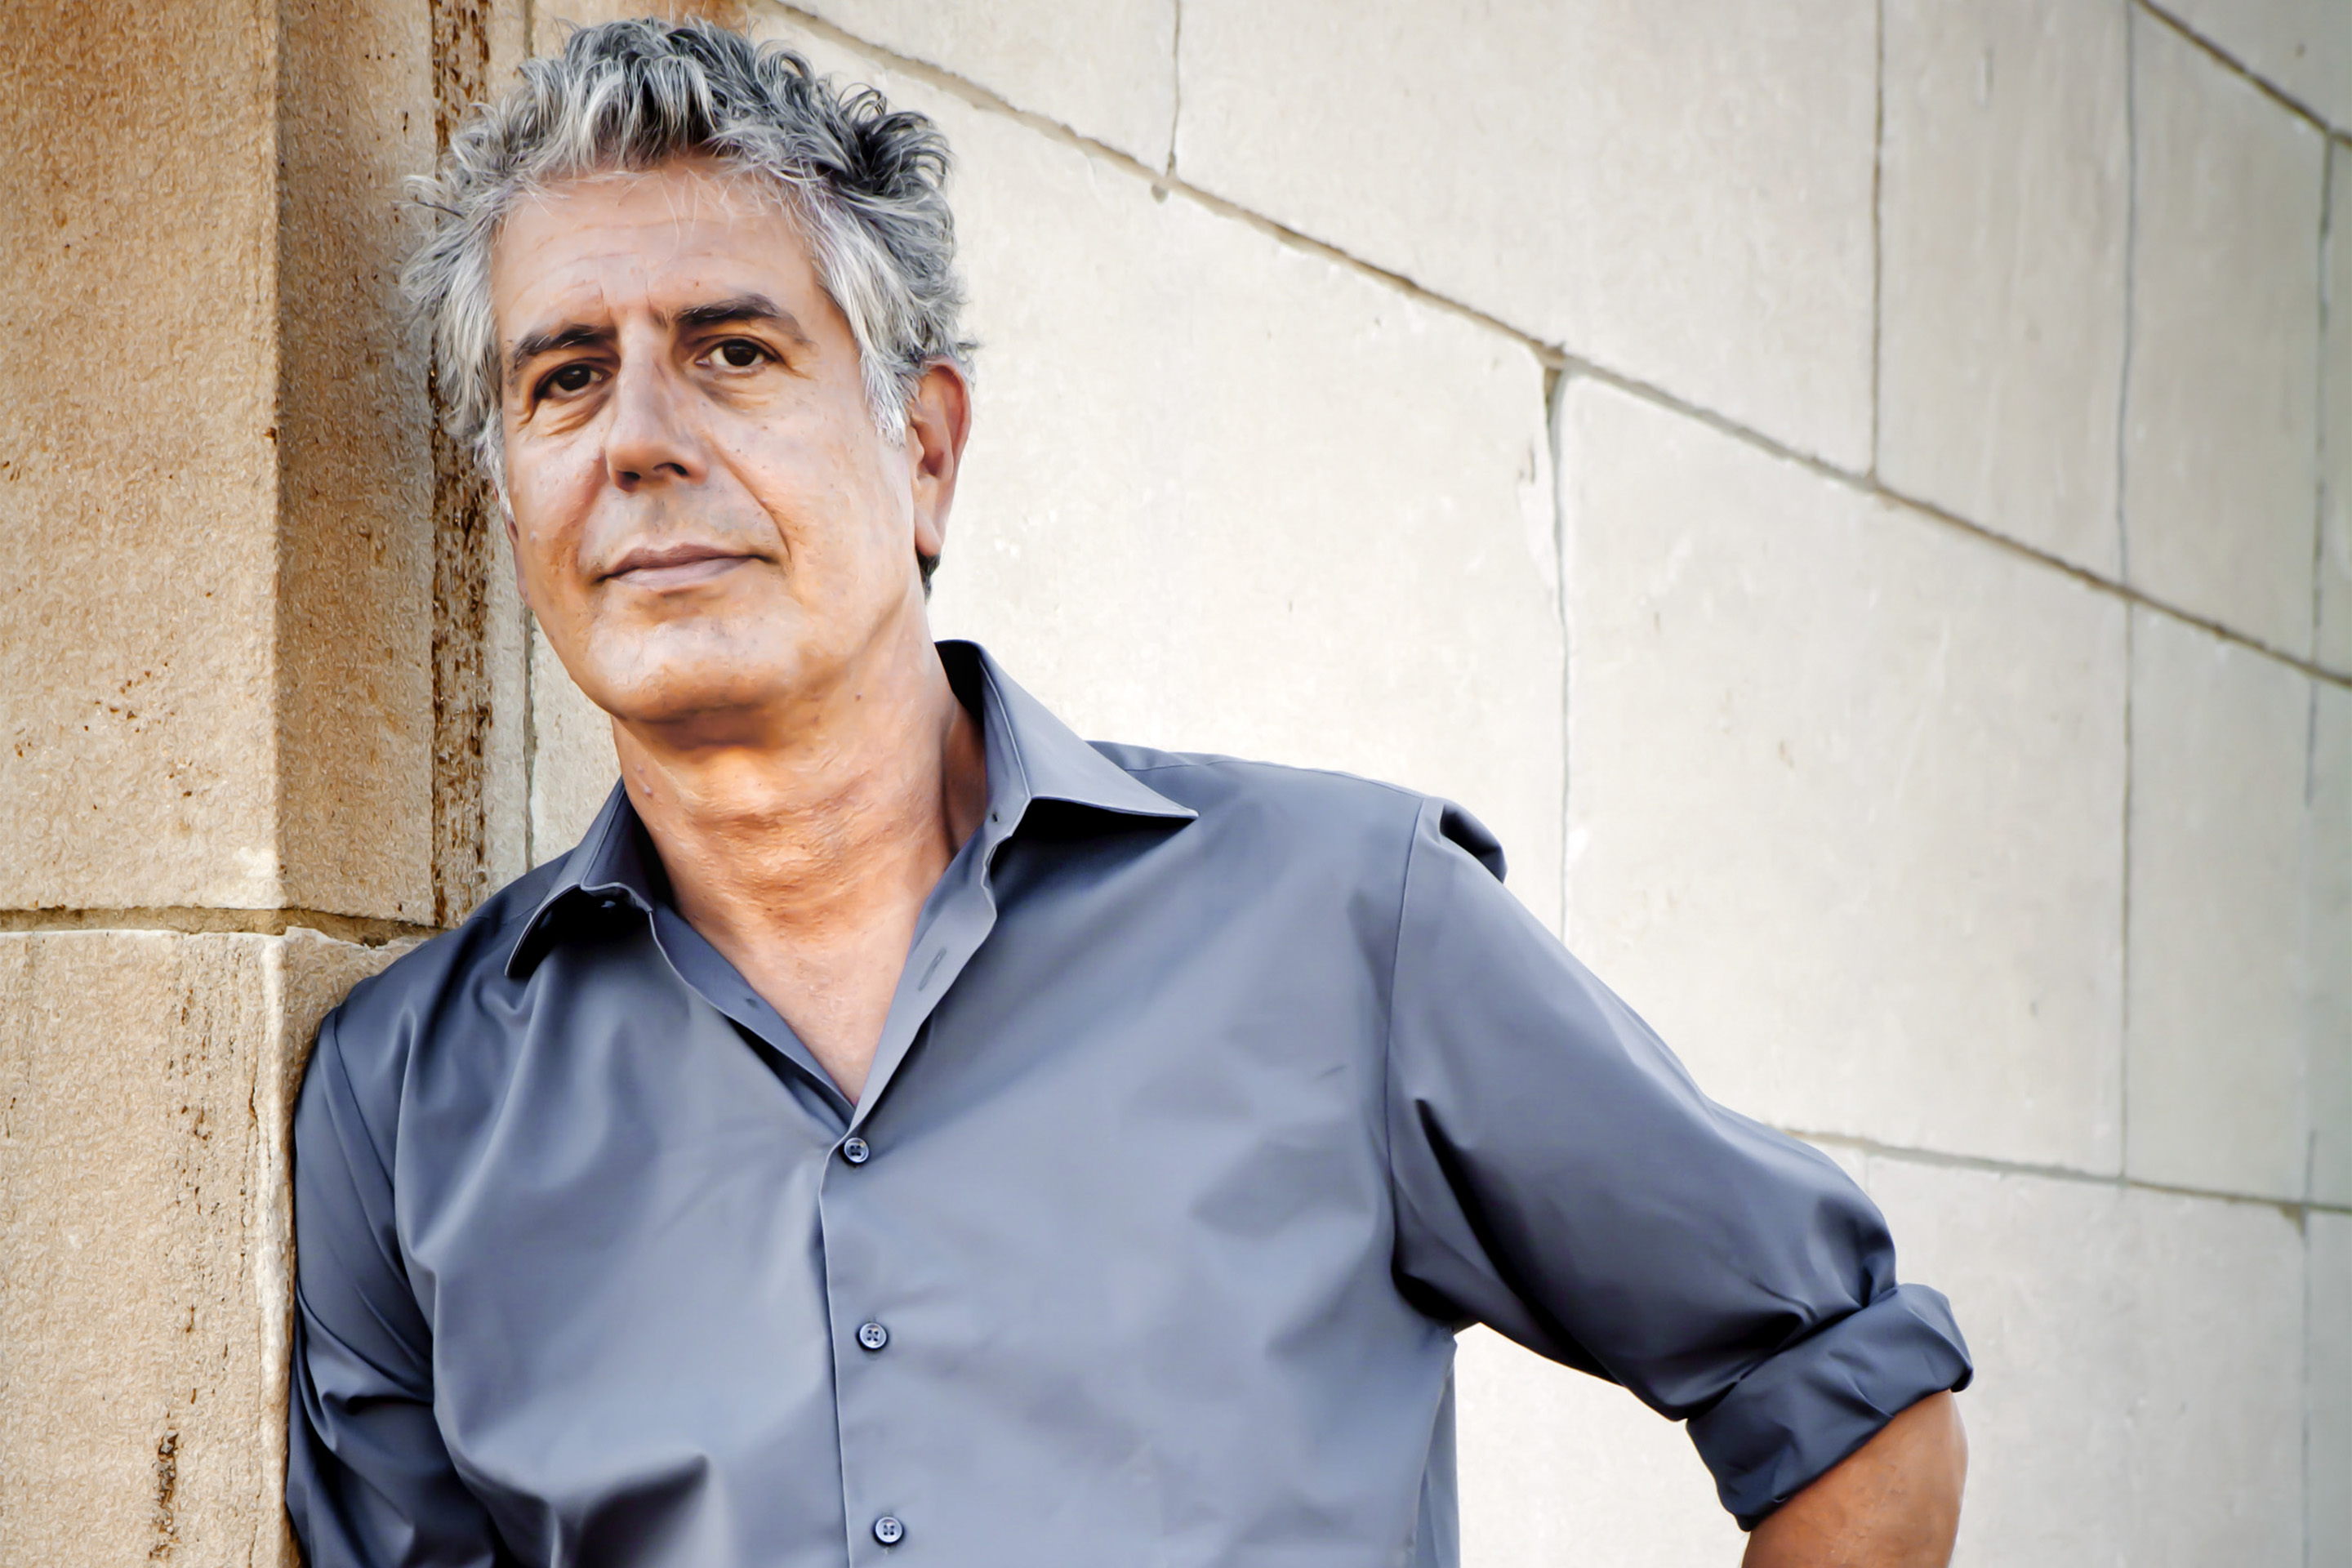 Travel Channel promo shoot for Anthony Bourdain Layover in New York